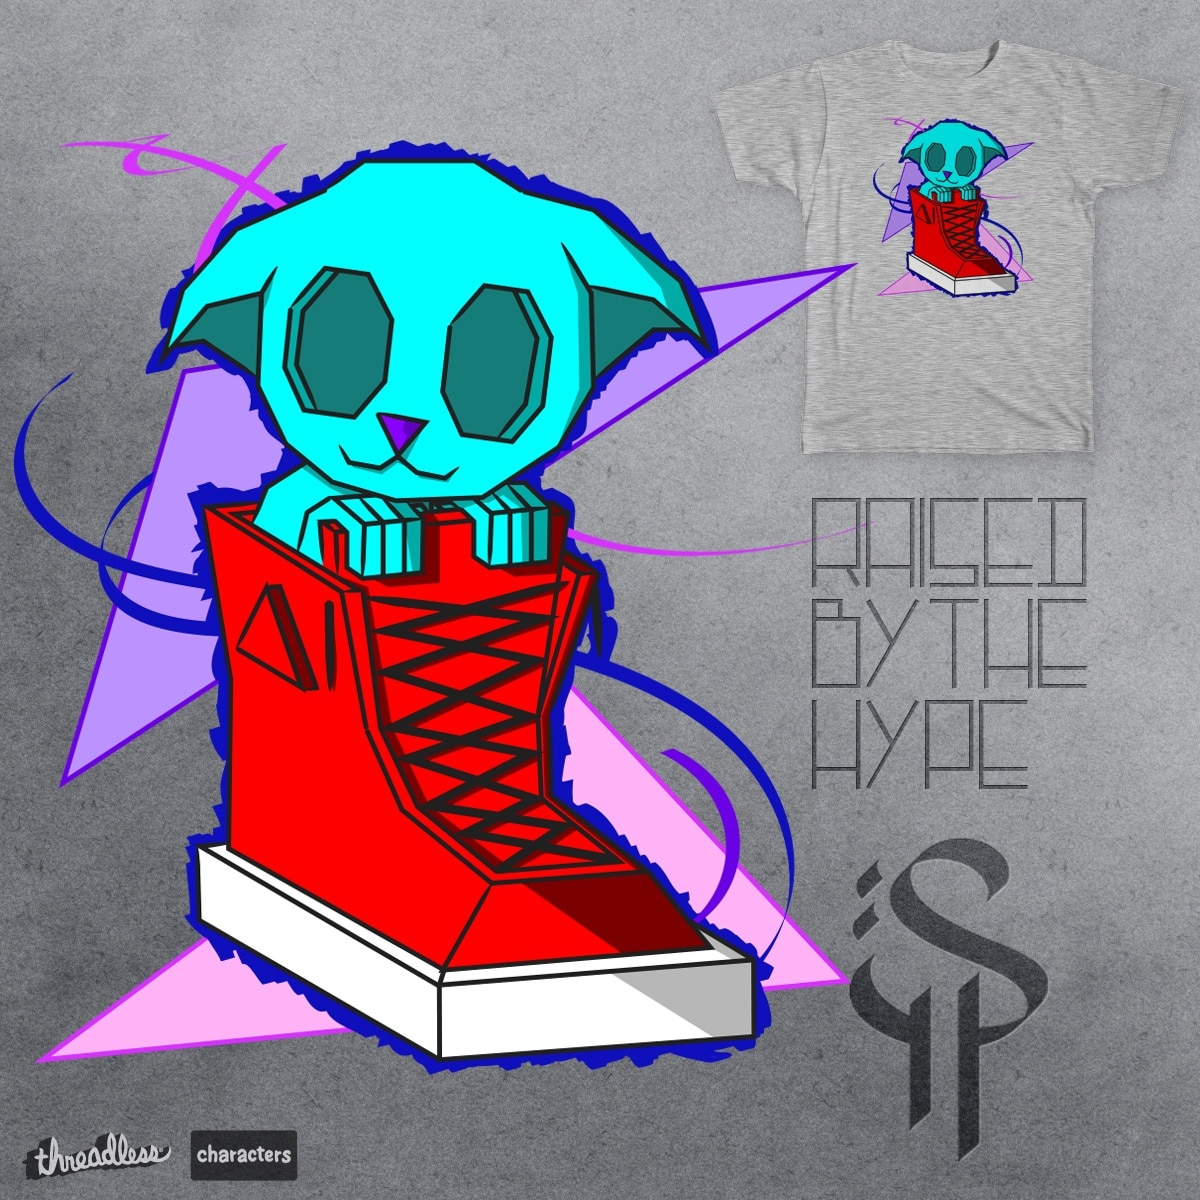 Raised by the hype by bayz on Threadless